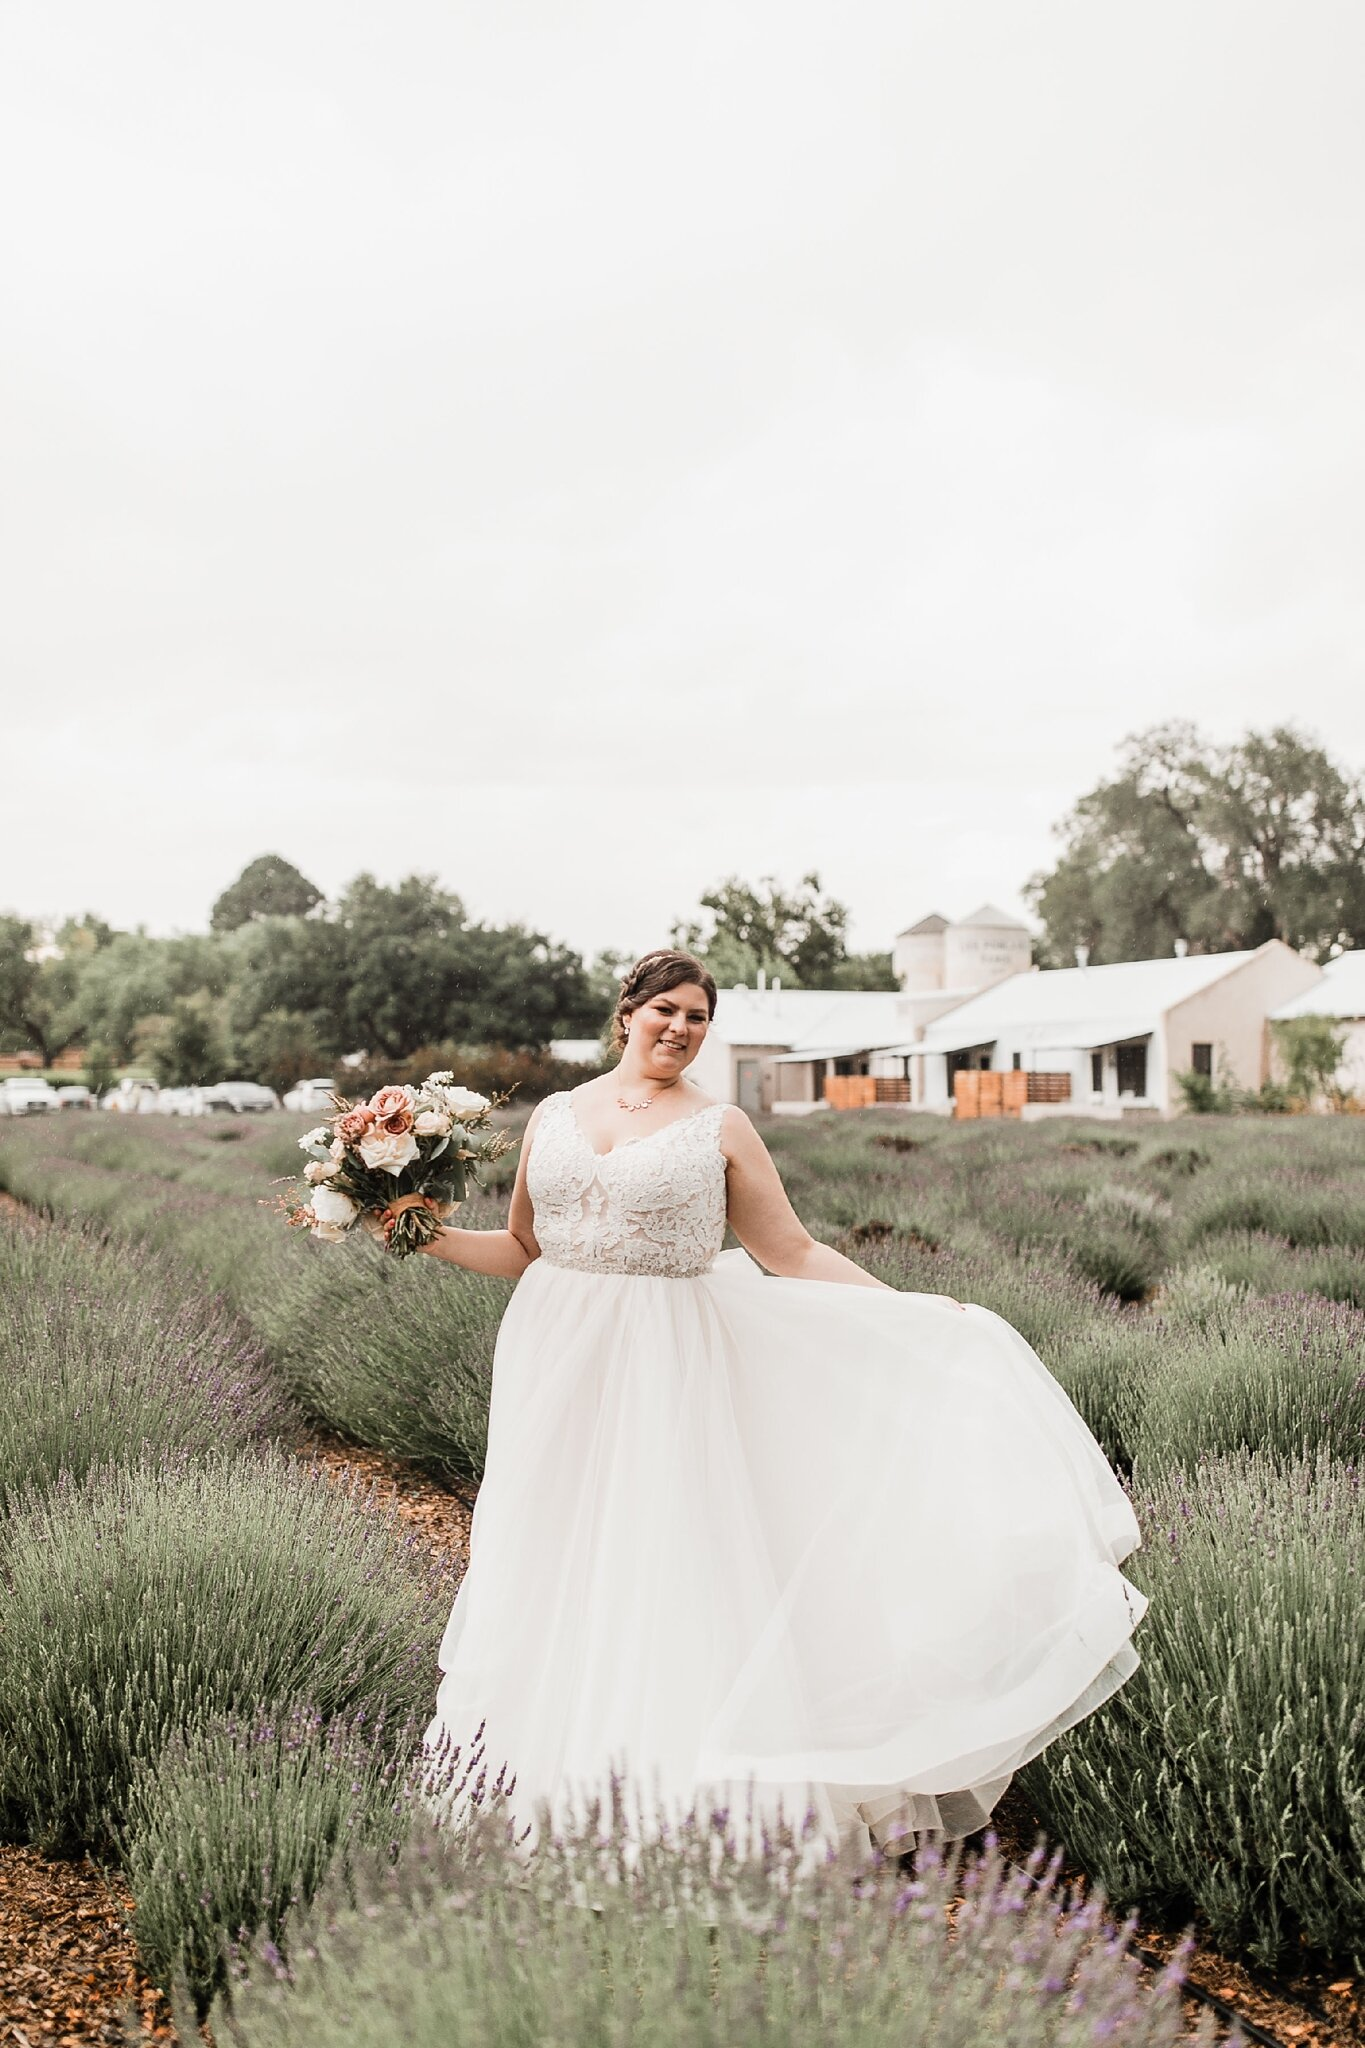 Alicia+lucia+photography+-+albuquerque+wedding+photographer+-+santa+fe+wedding+photography+-+new+mexico+wedding+photographer+-+new+mexico+wedding+-+wedding+-+bridal+gown+-+wedding+gown+-+ballgown+wedding+gown+-+ballgown+bridal+gown_0041.jpg